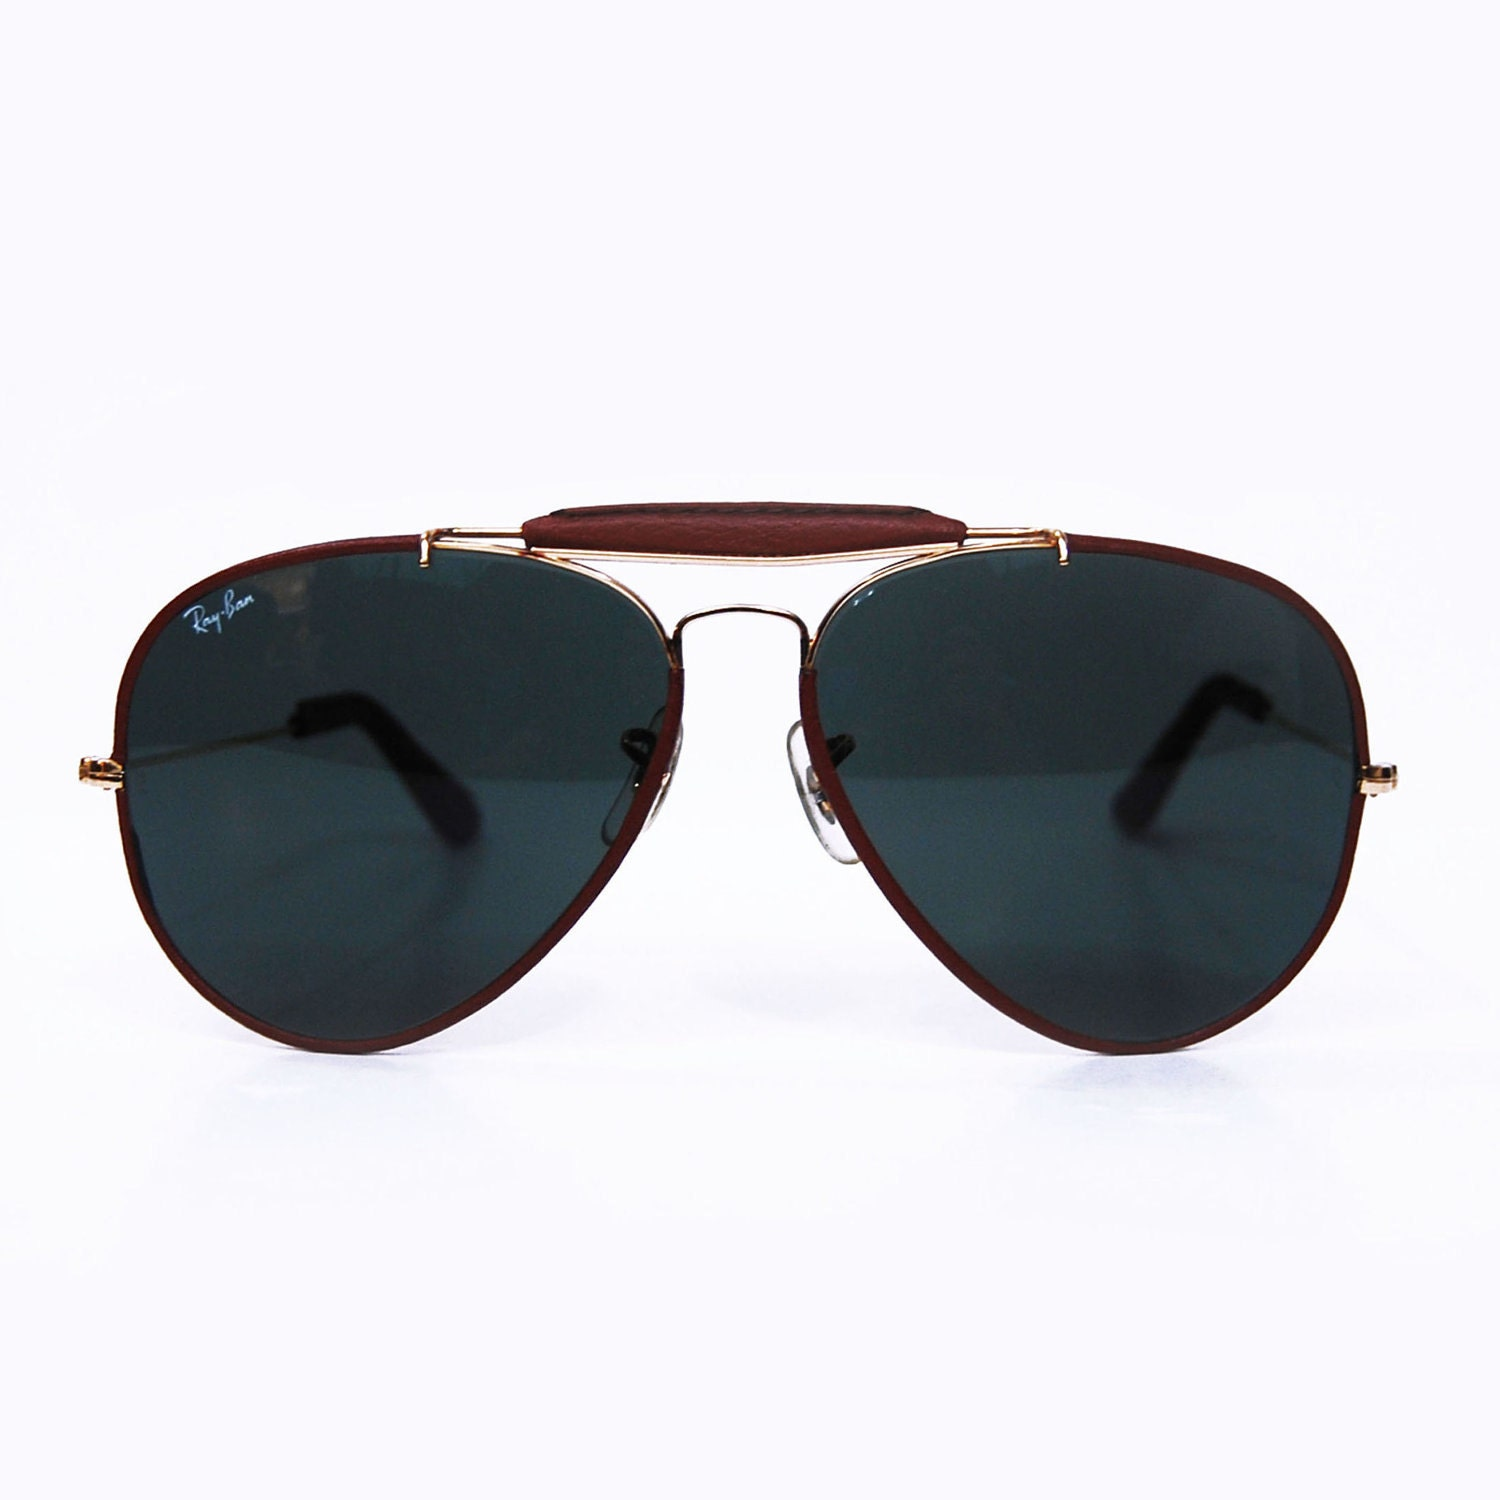 Thing also Black And Gold Aviator Sunglasses together with Vintage Ray Ban Bl Leathers Sunglasses additionally Oversized Aviator Sunglasses For Women in addition Collectioncdwn Cool Baseball Hats For Women. on vintage sungl